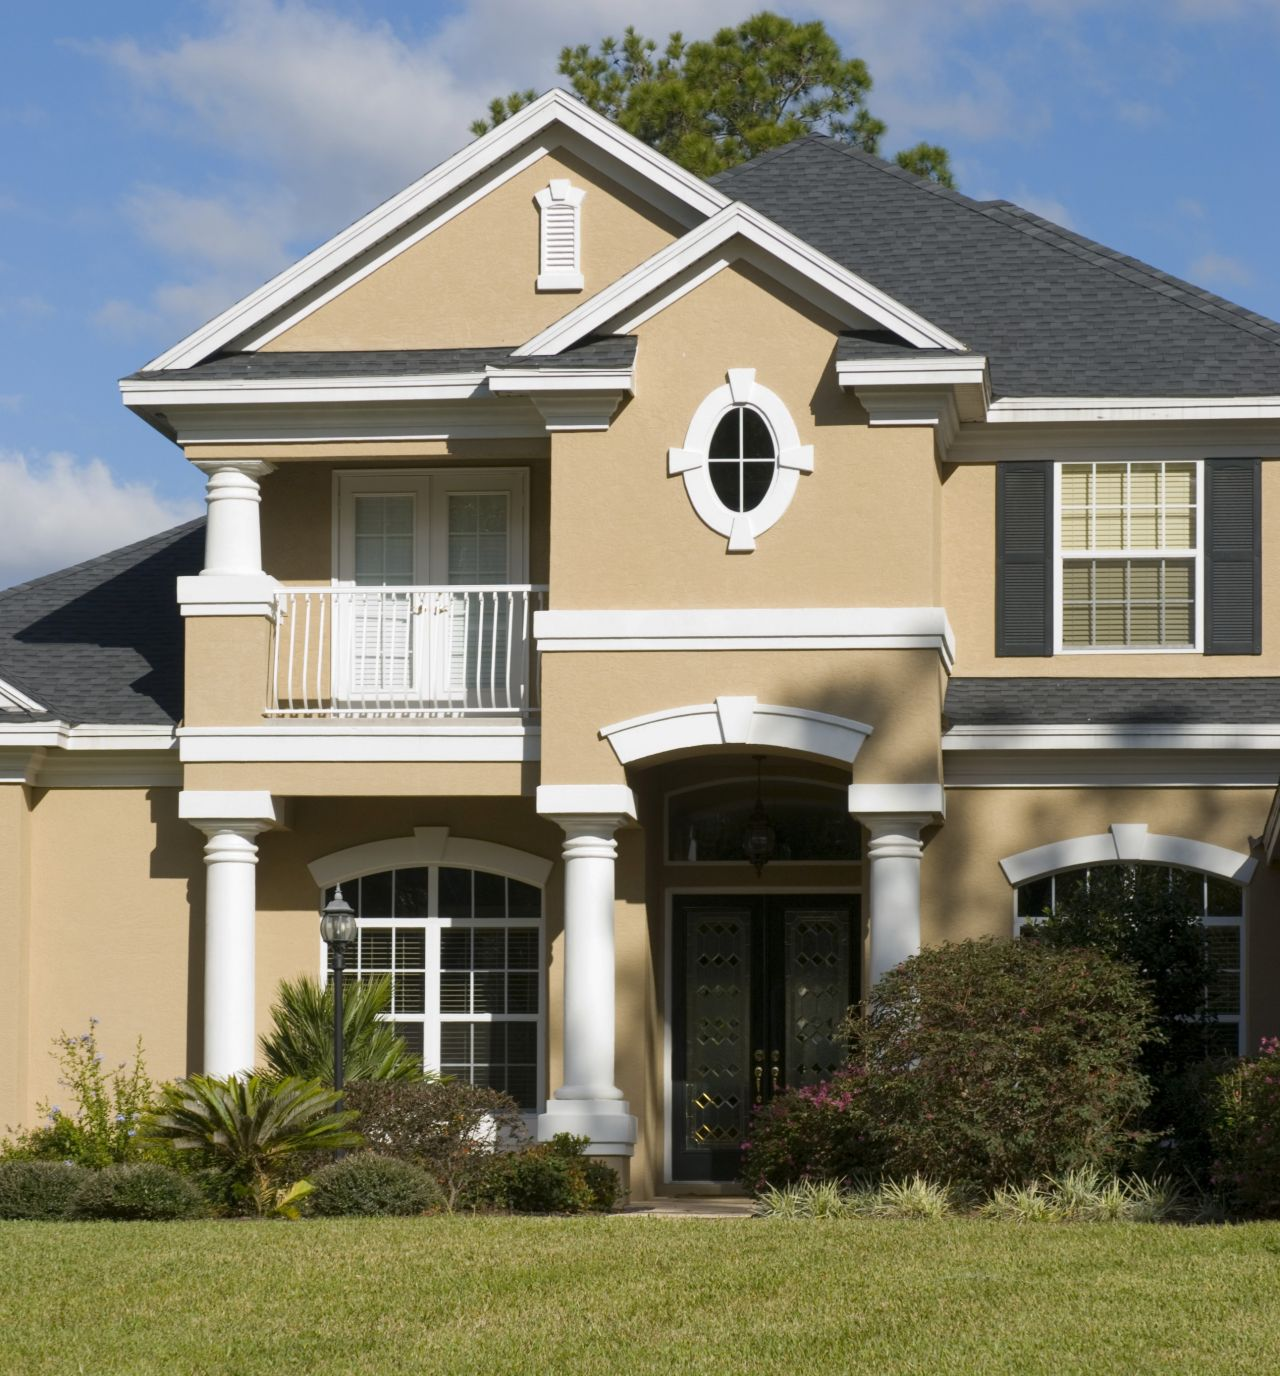 Exterior paint schemes and consider your surroundings for Paint colors exterior house